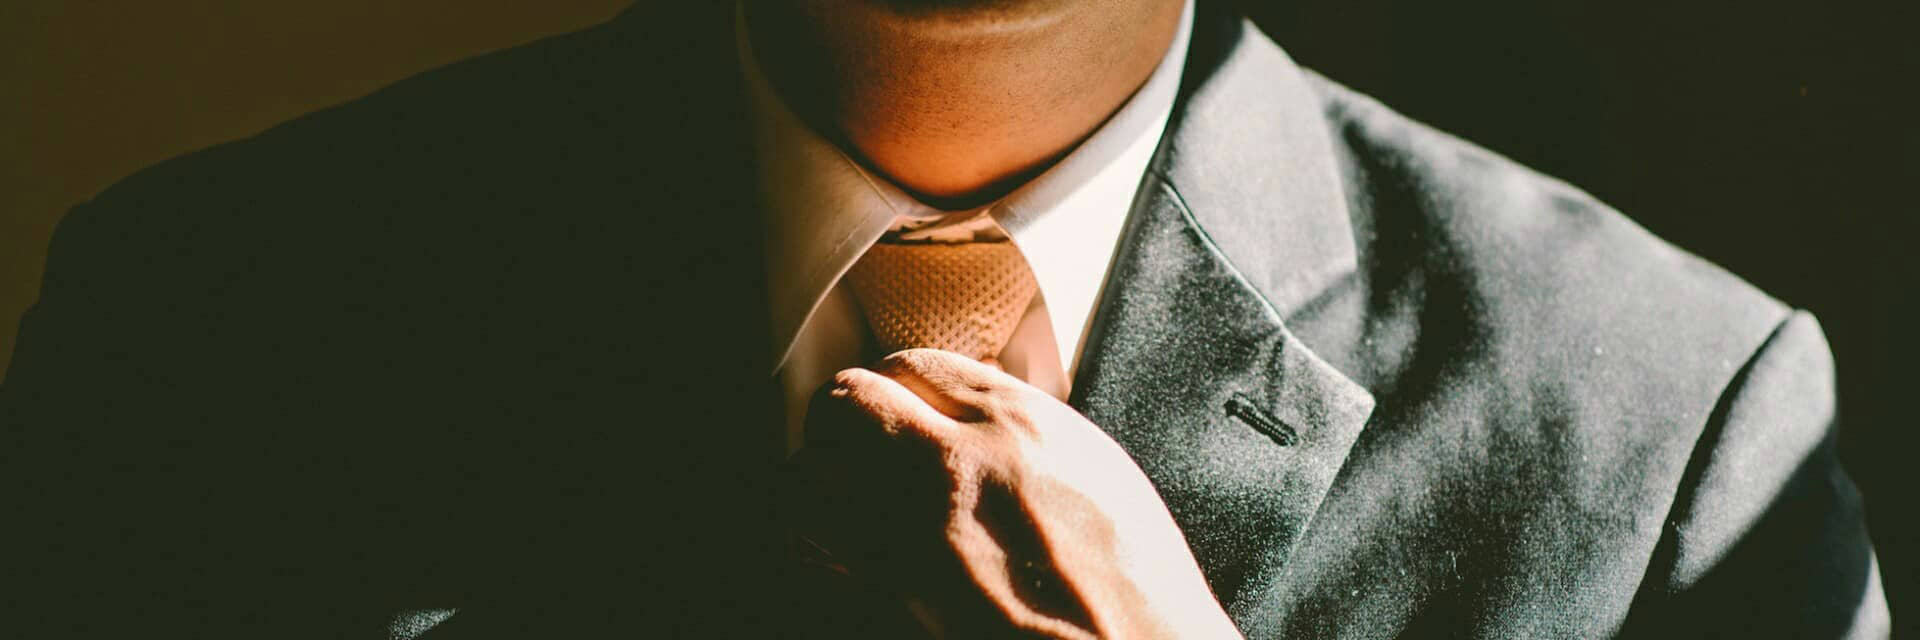 How to Ace the Finance Interview